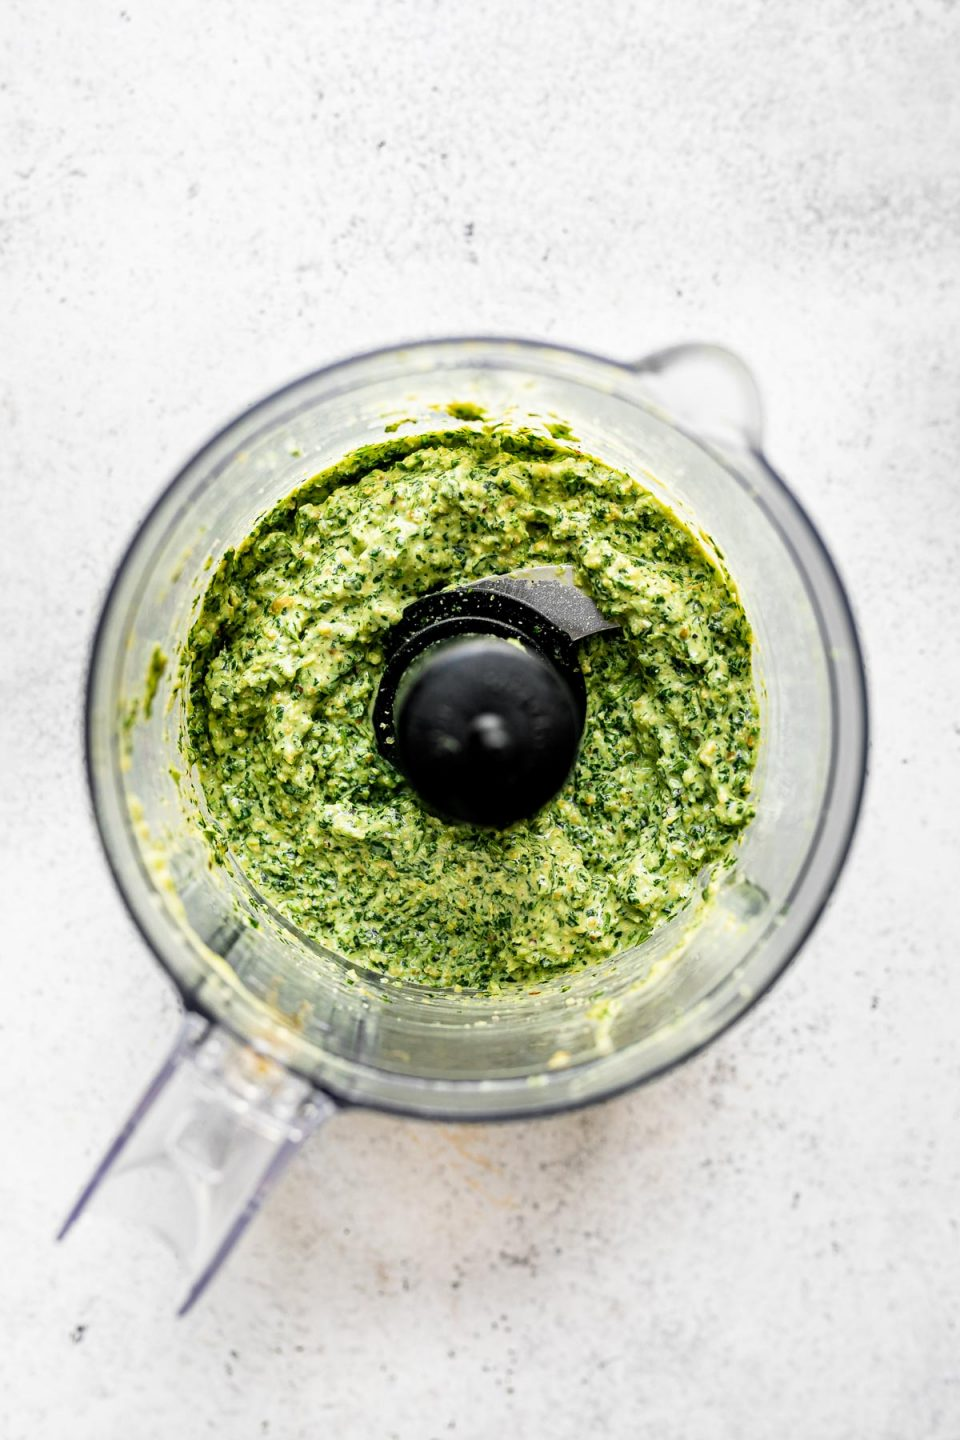 Blended jalapeño pesto in a food processor carafe, atop a light gray & white surface.